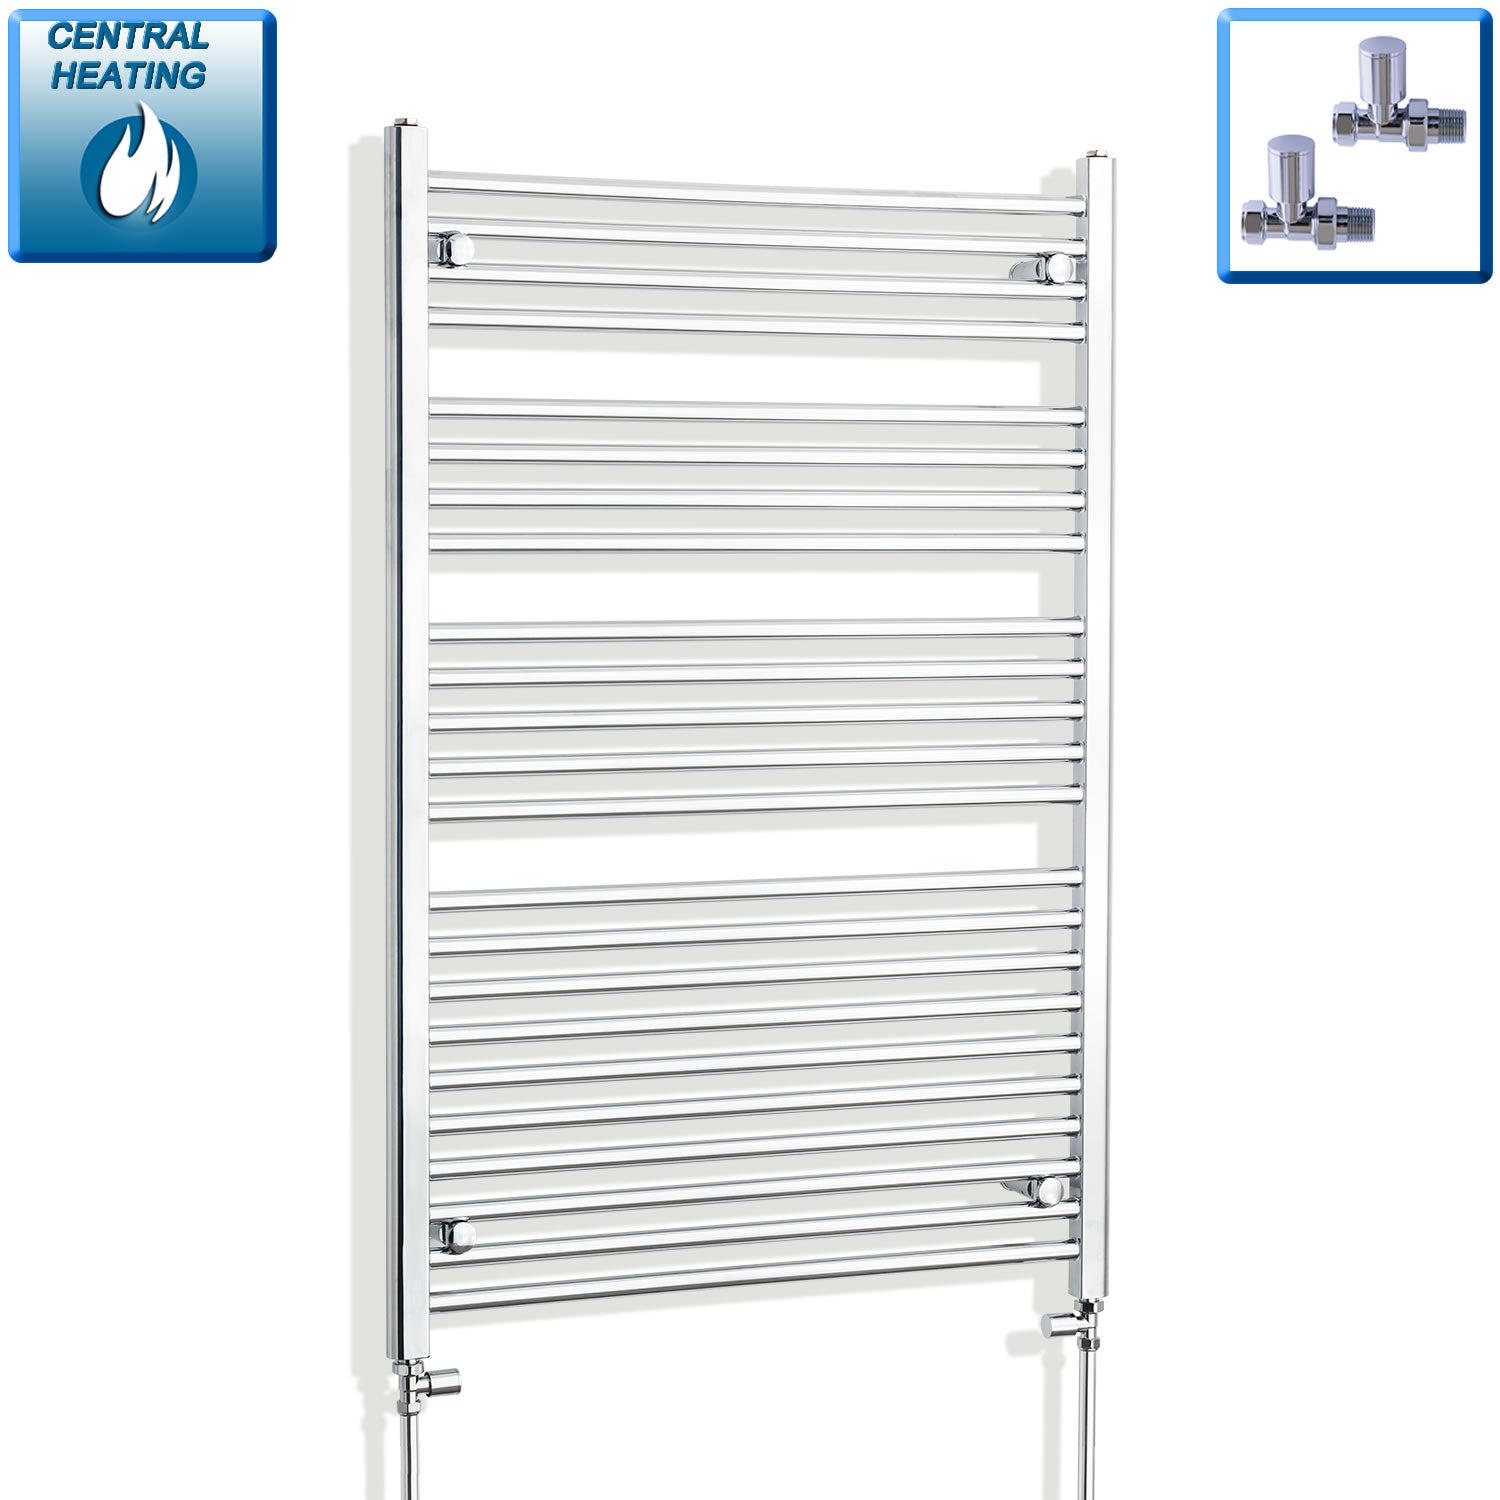 900mm Wide 1200mm High Chrome Towel Rail Radiator With Straight Valve